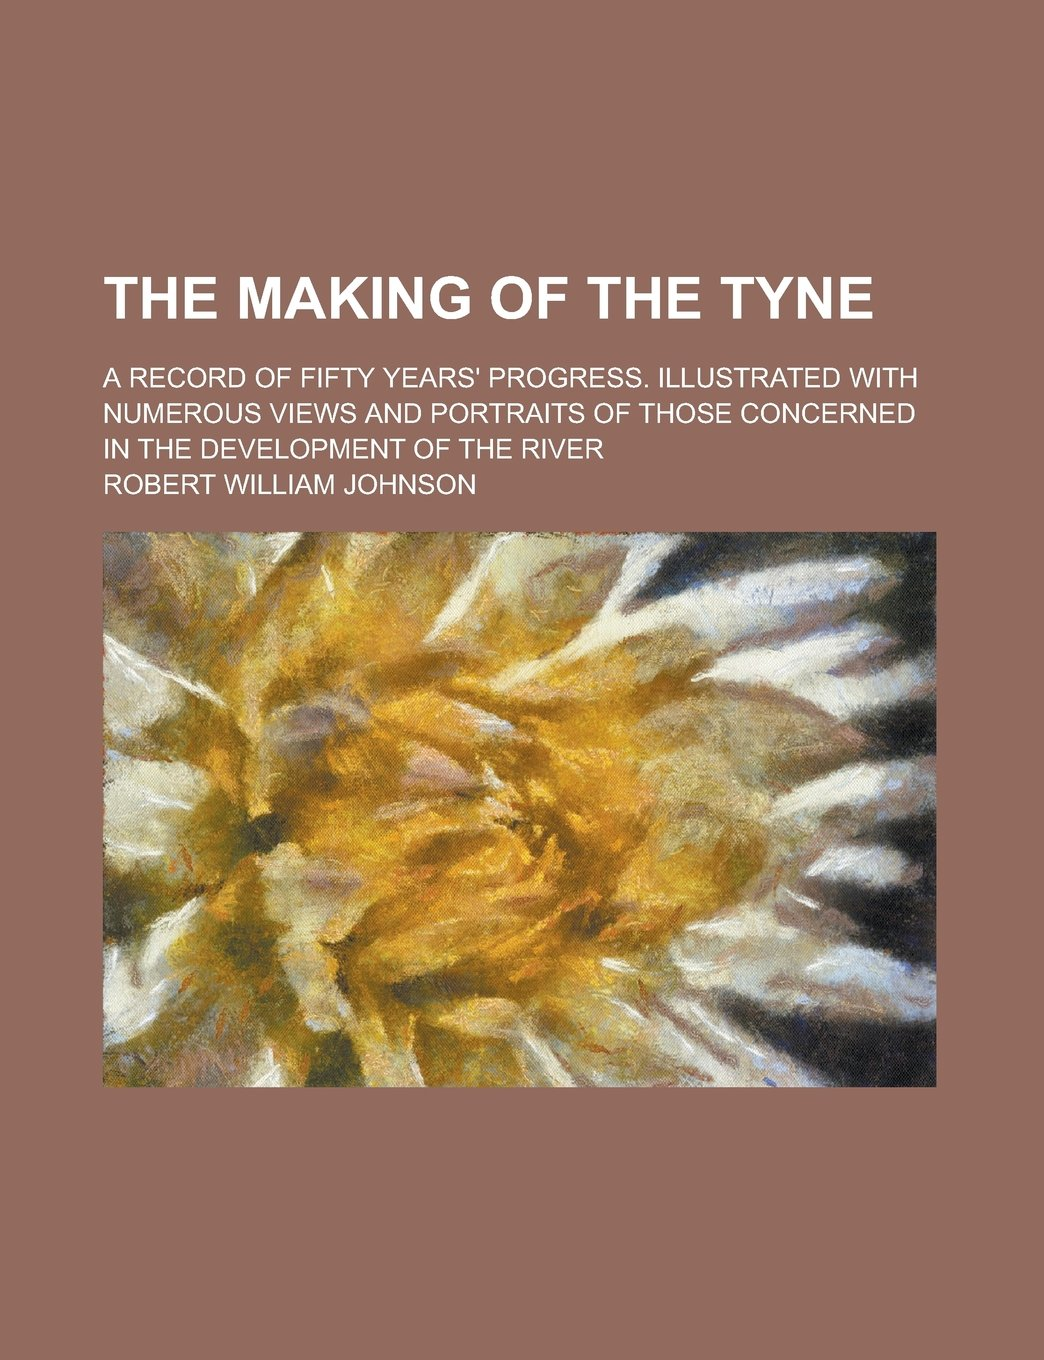 Download The Making of the Tyne; A Record of Fifty Years' Progress. Illustrated with Numerous Views and Portraits of Those Concerned in the Development of the River pdf